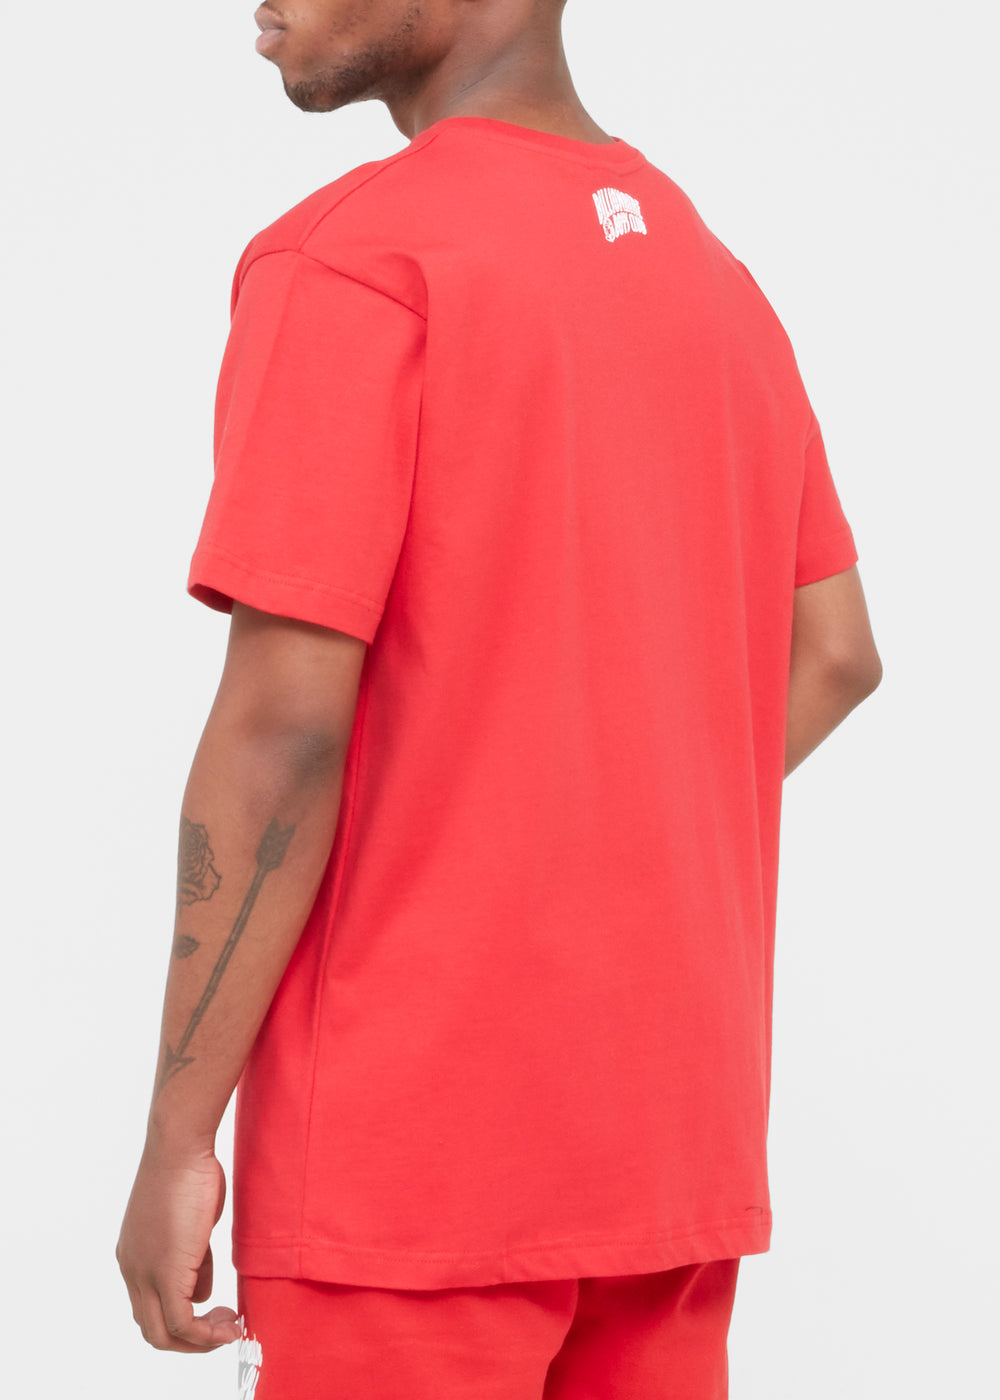 billionaire-boys-club-bbc-av-hlmt-tee-891-8208-red-red-3